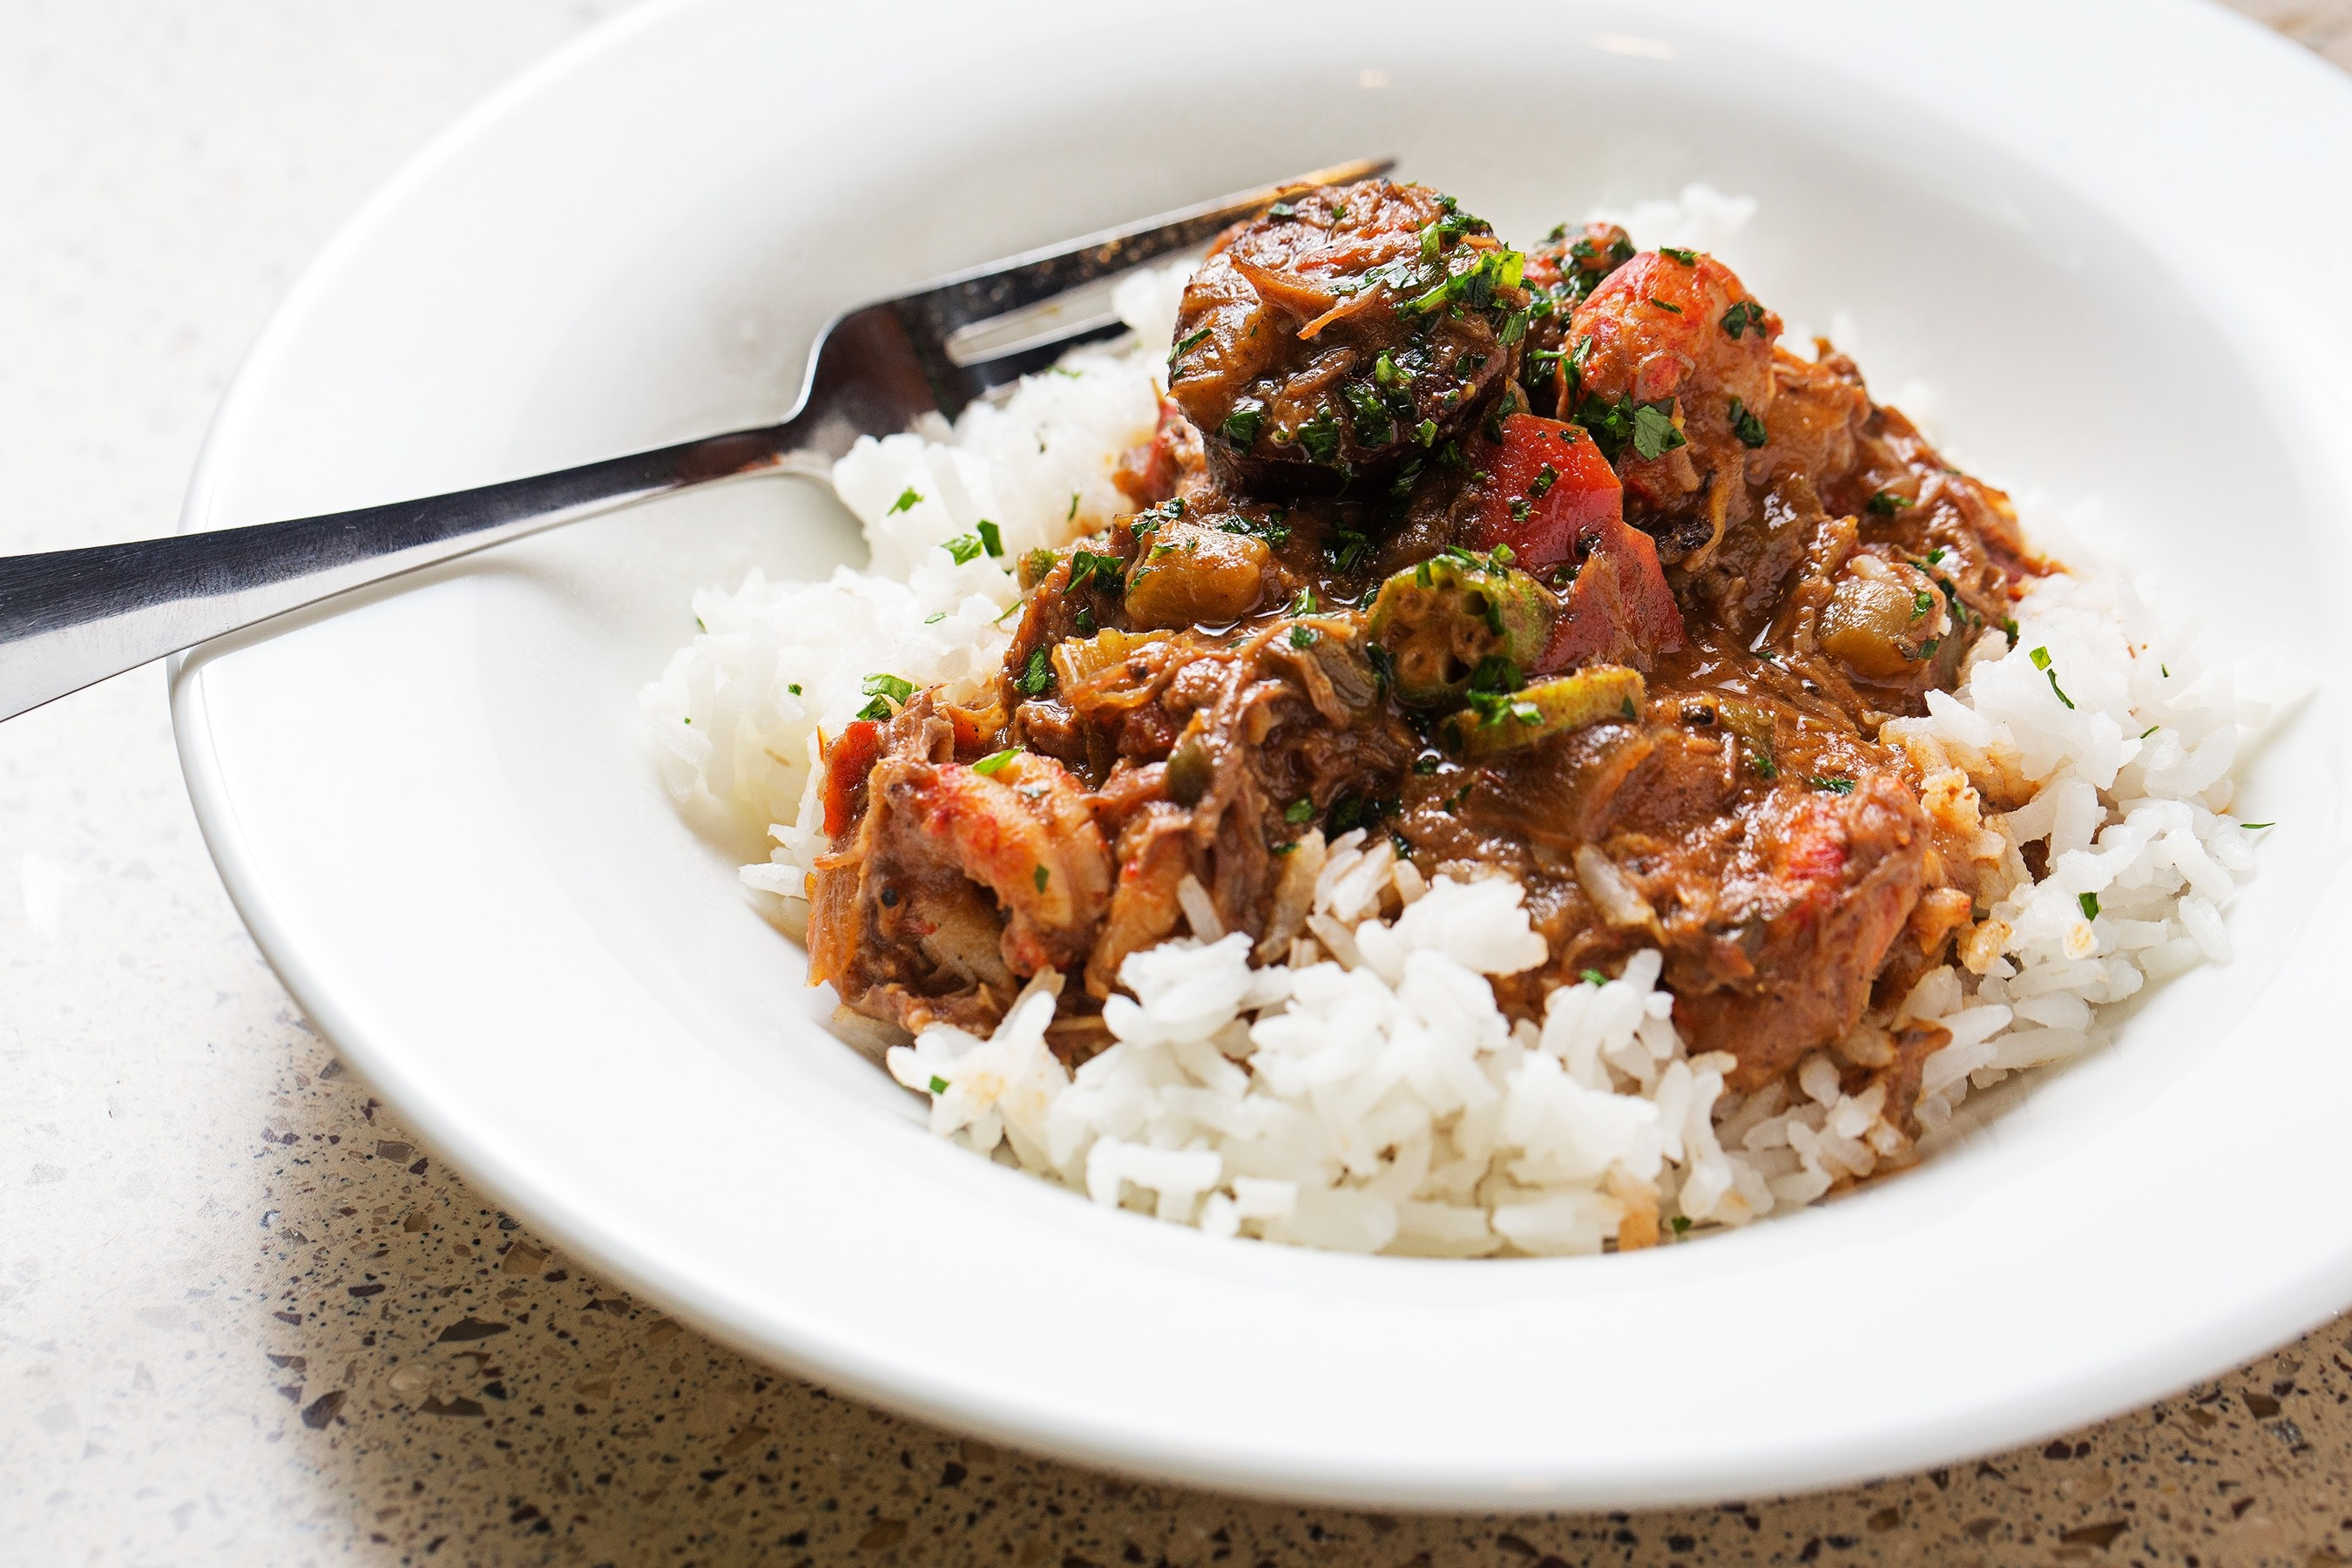 Gumbo, Courtesy of the National Museum of African American History and Culture's Sweet Home Cafe